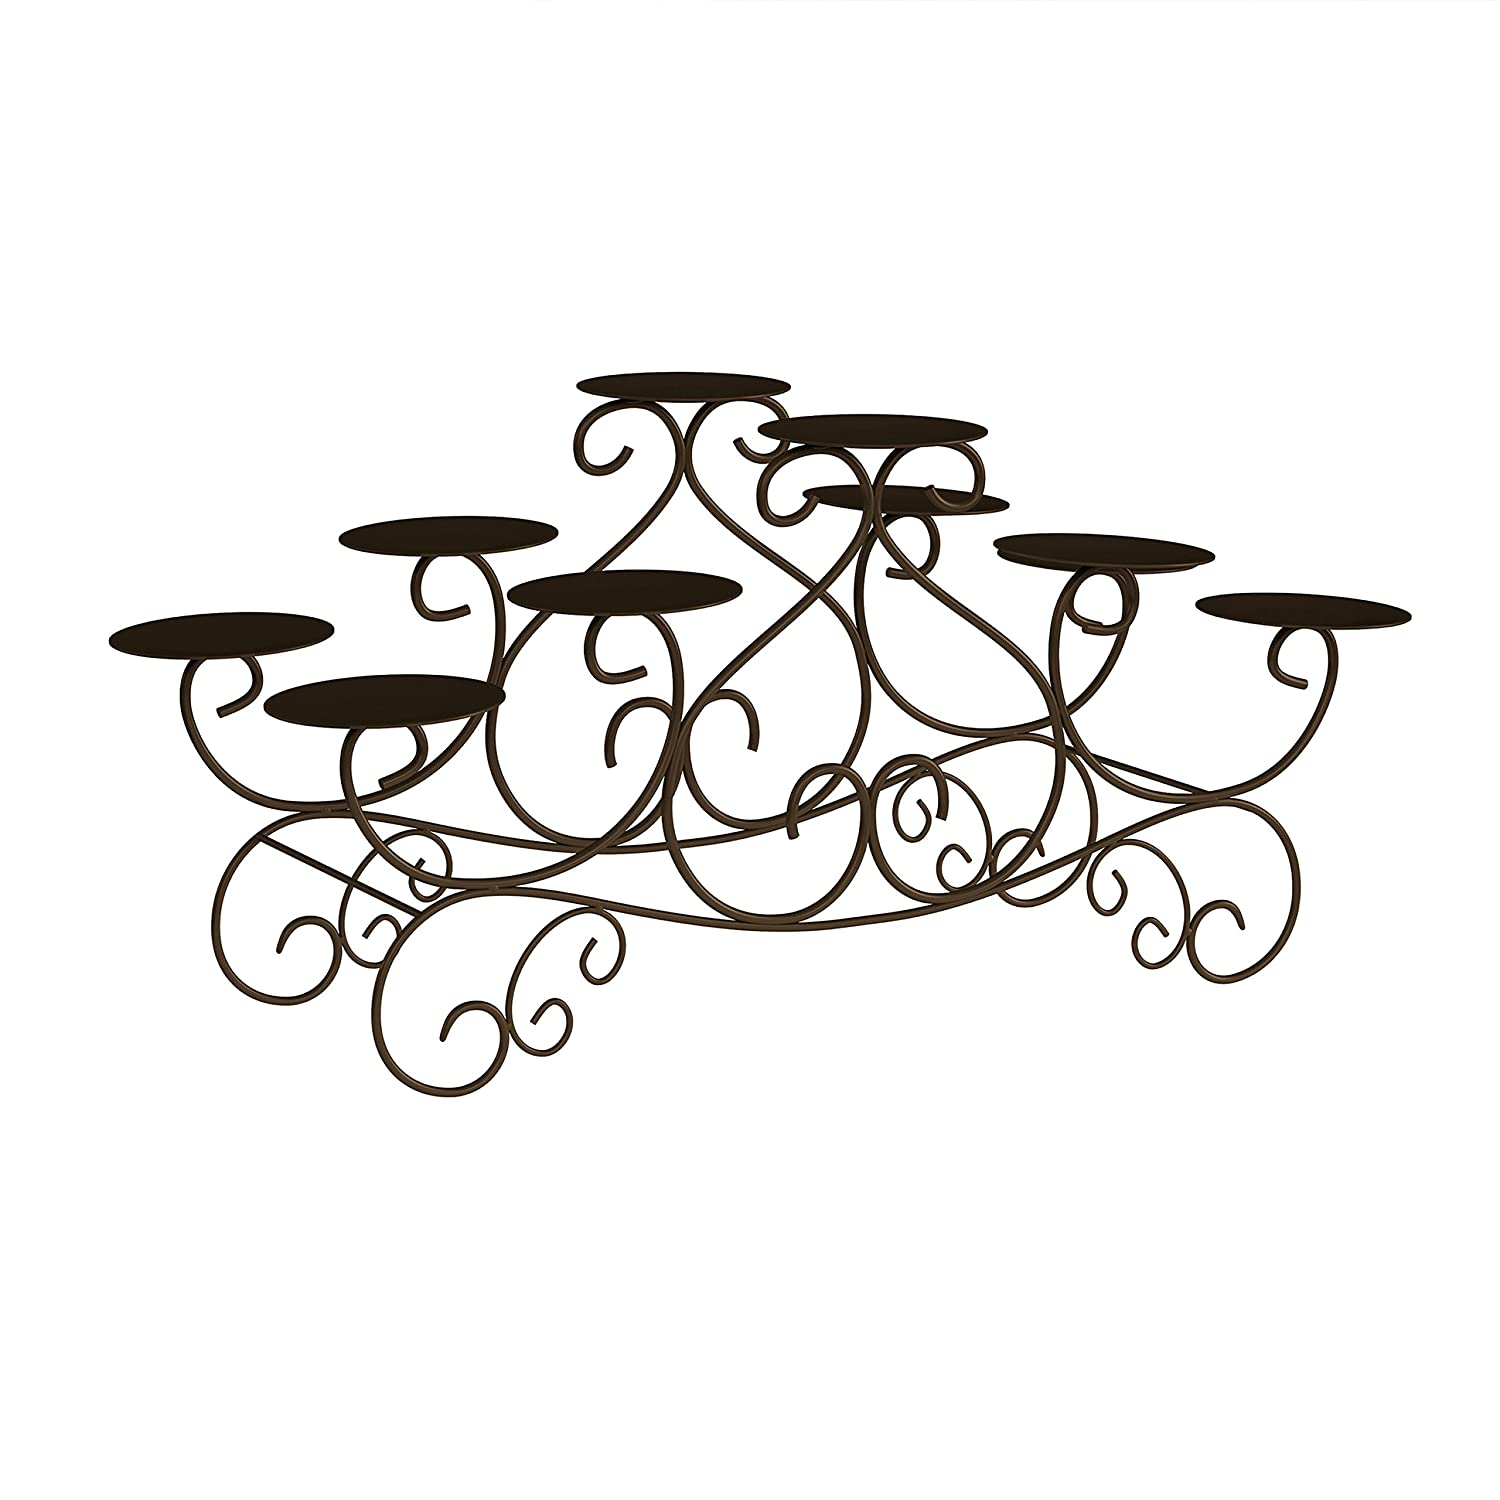 Brown Event Lavish Home 10 Candle Candelabra with Swirl Design- Handcrafted Iron Candle Holder//Centerpiece for Fireplace Wedding Brown Home D/écor